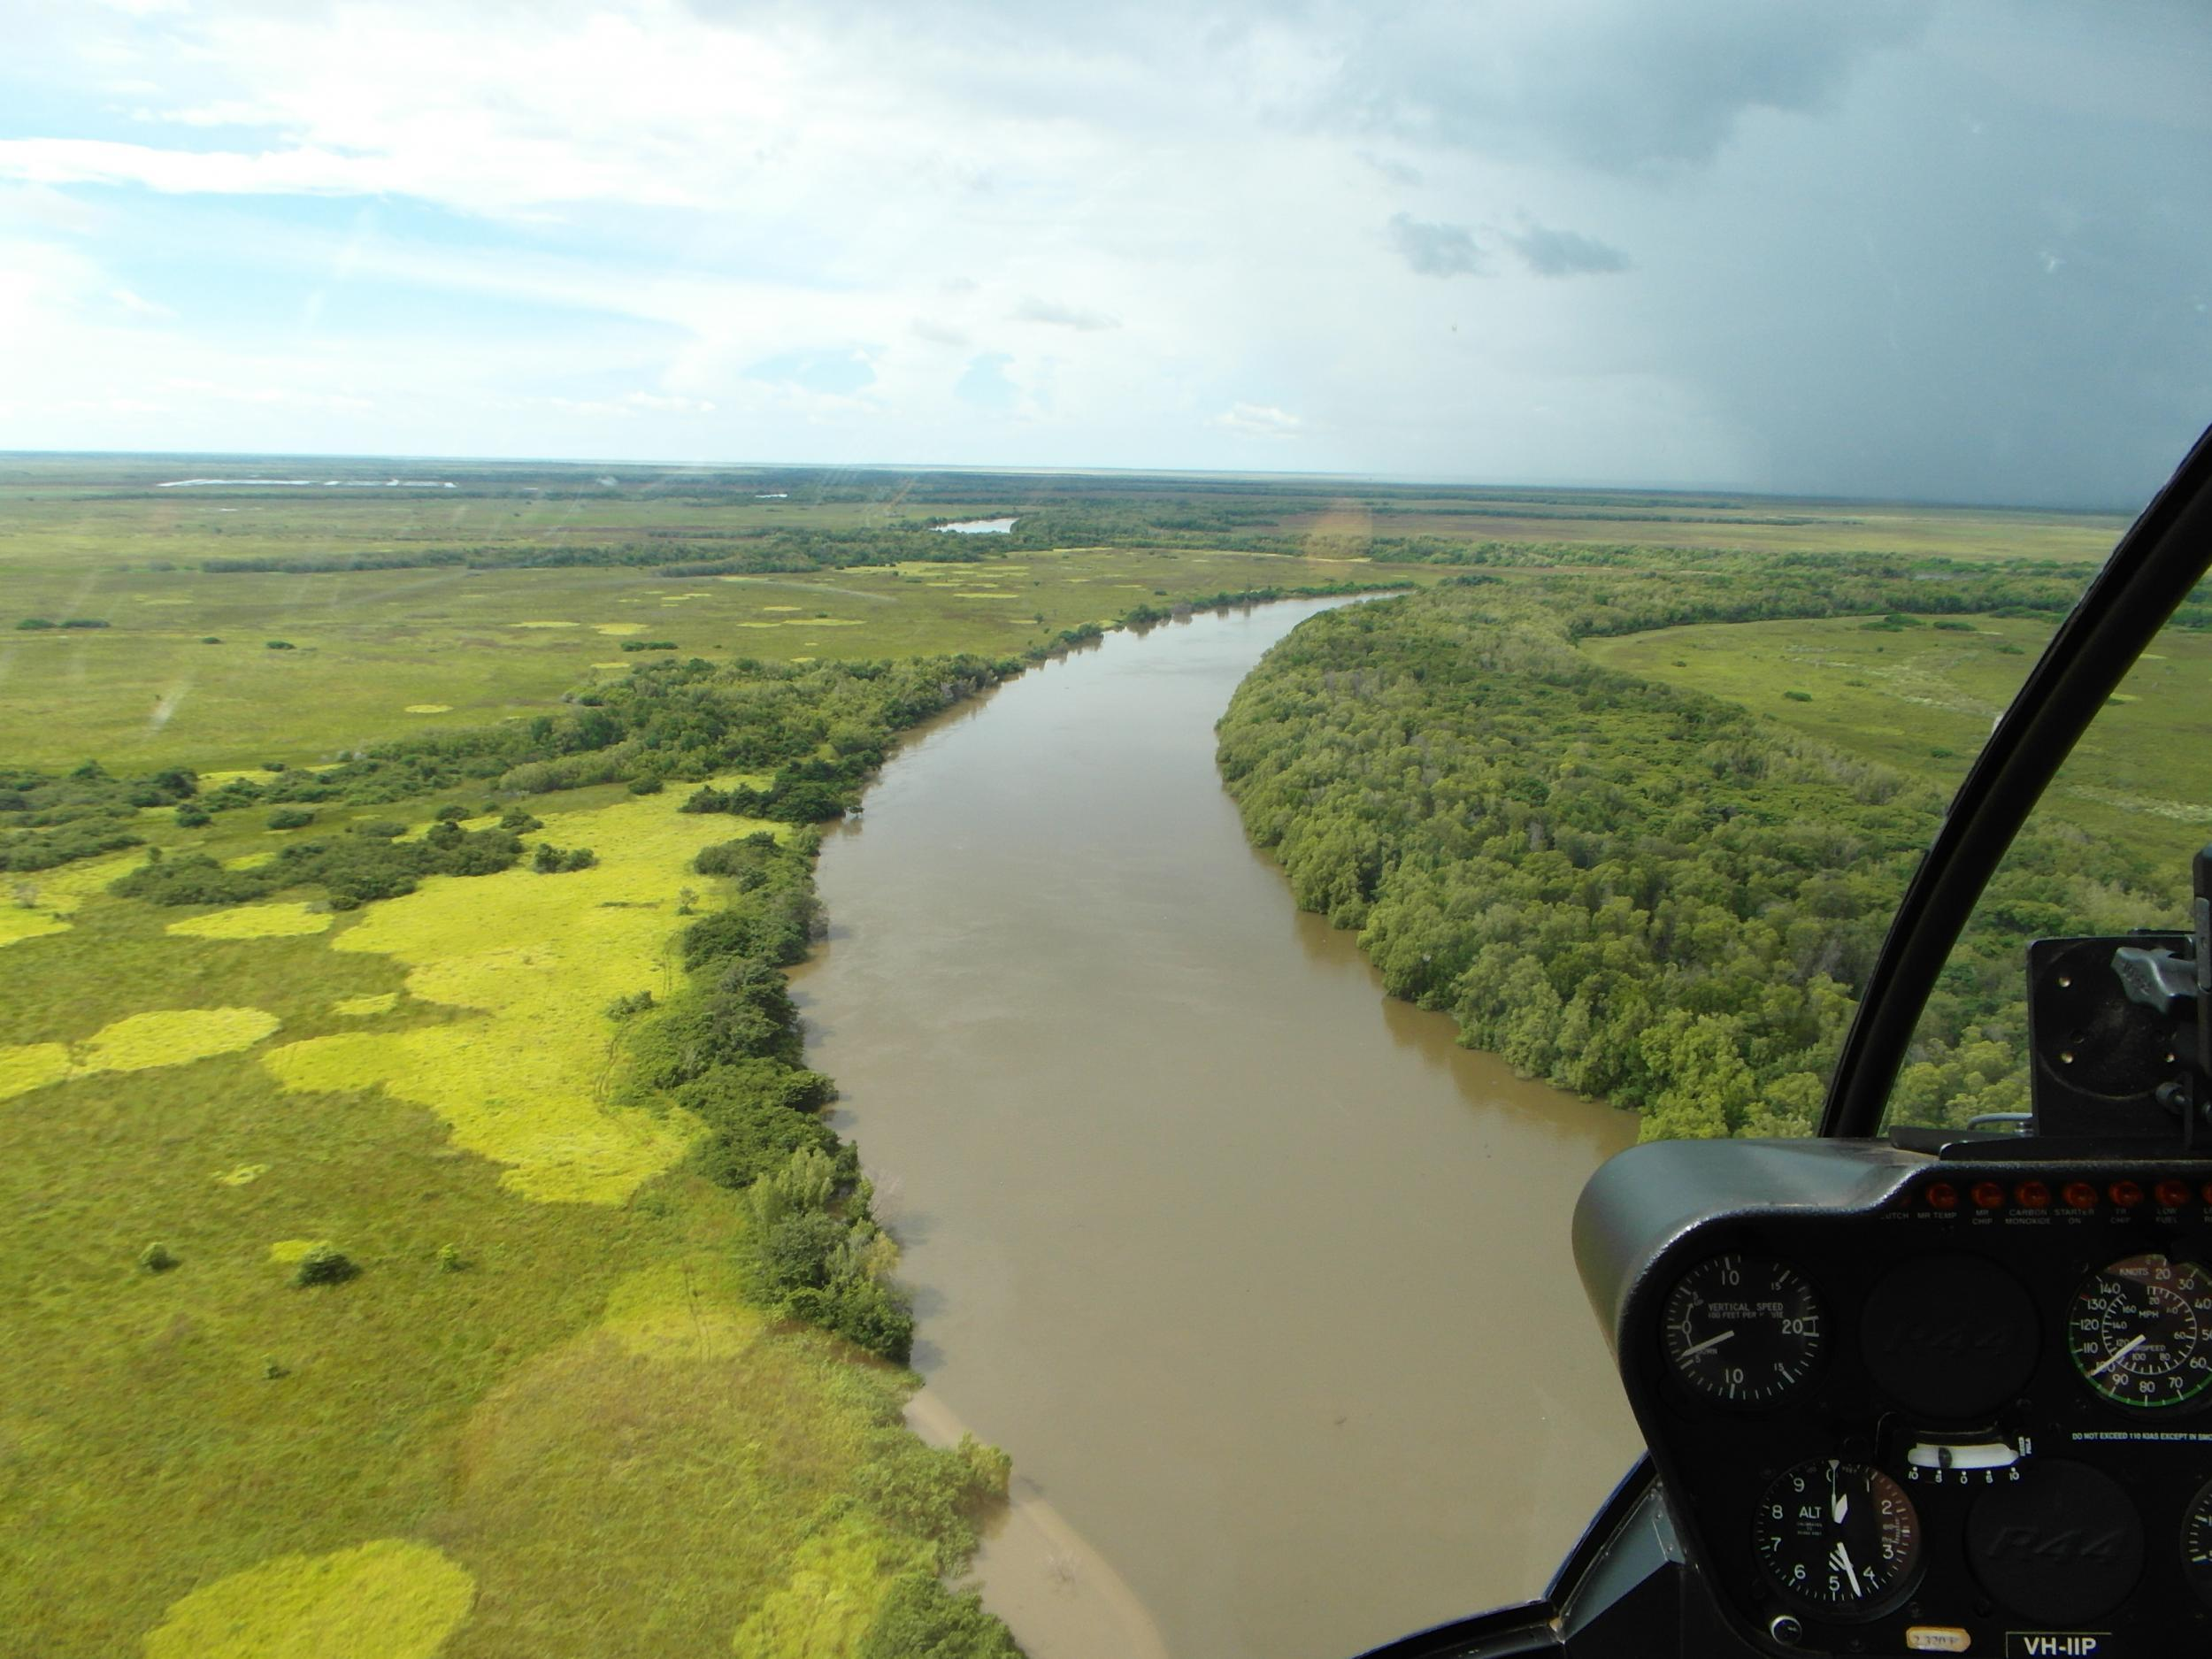 Drinking down under on Darwin's helicopter pub crawl | The Independent